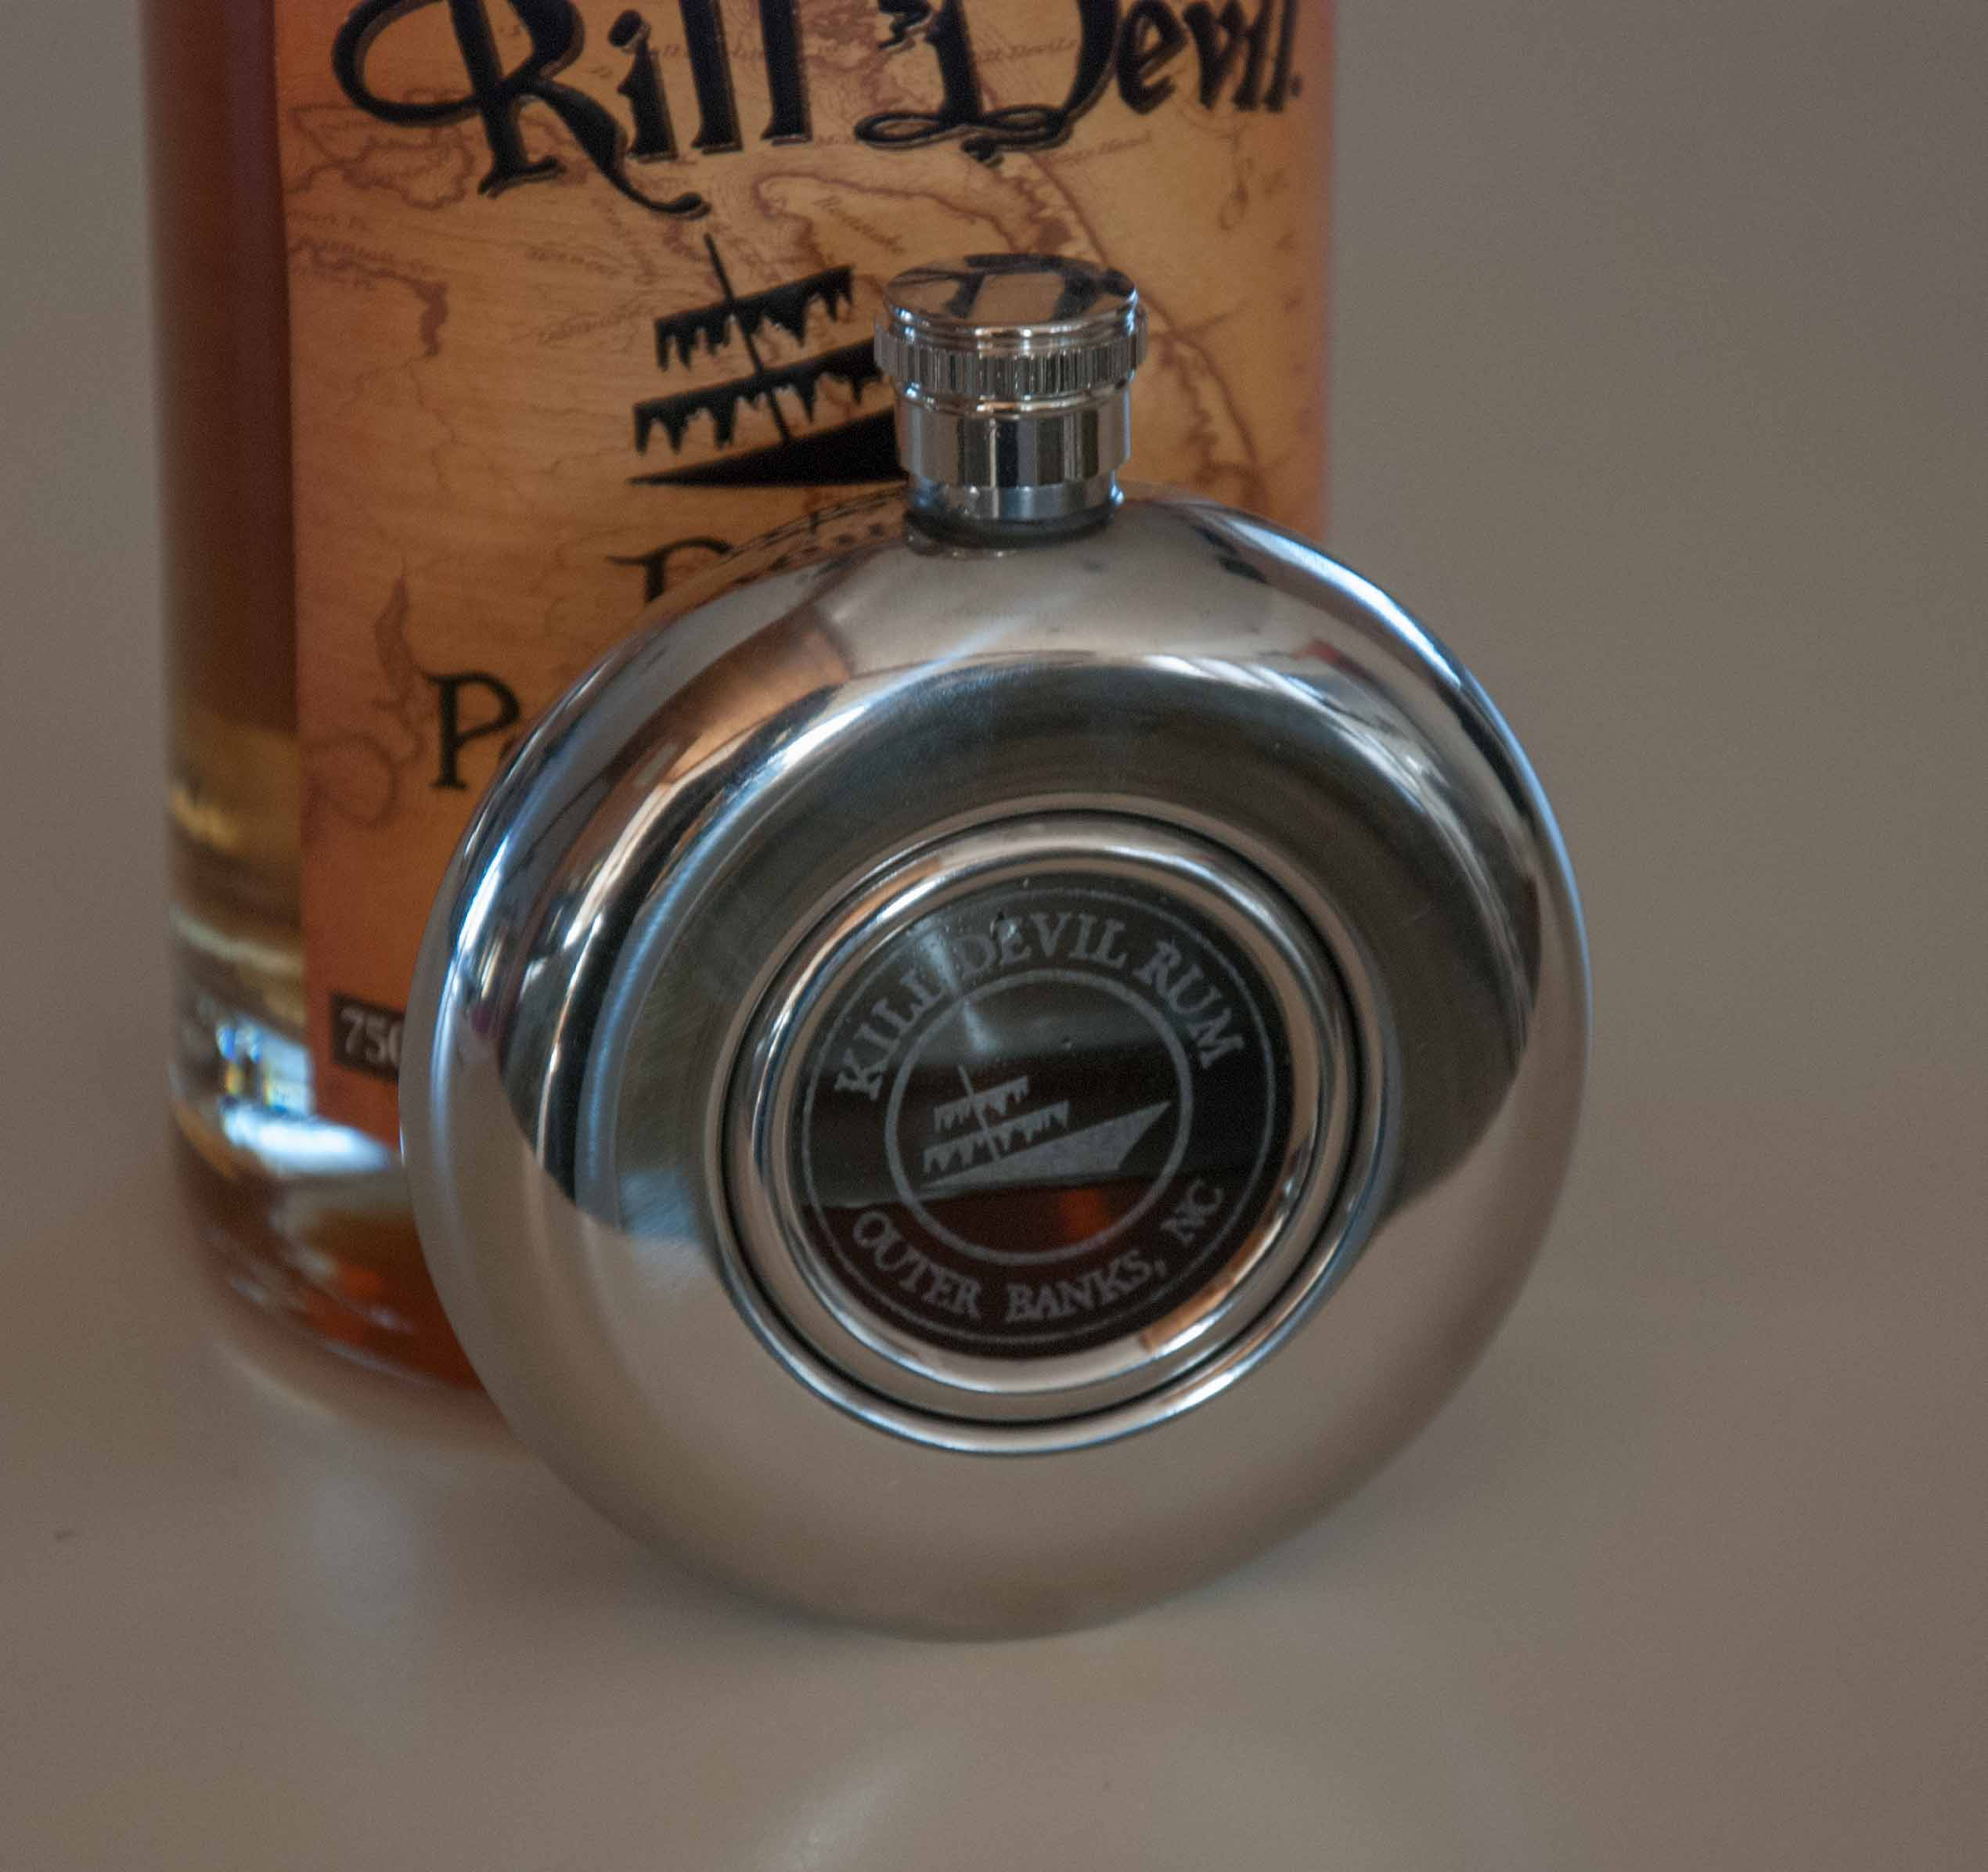 Kill Devil Rum Flask